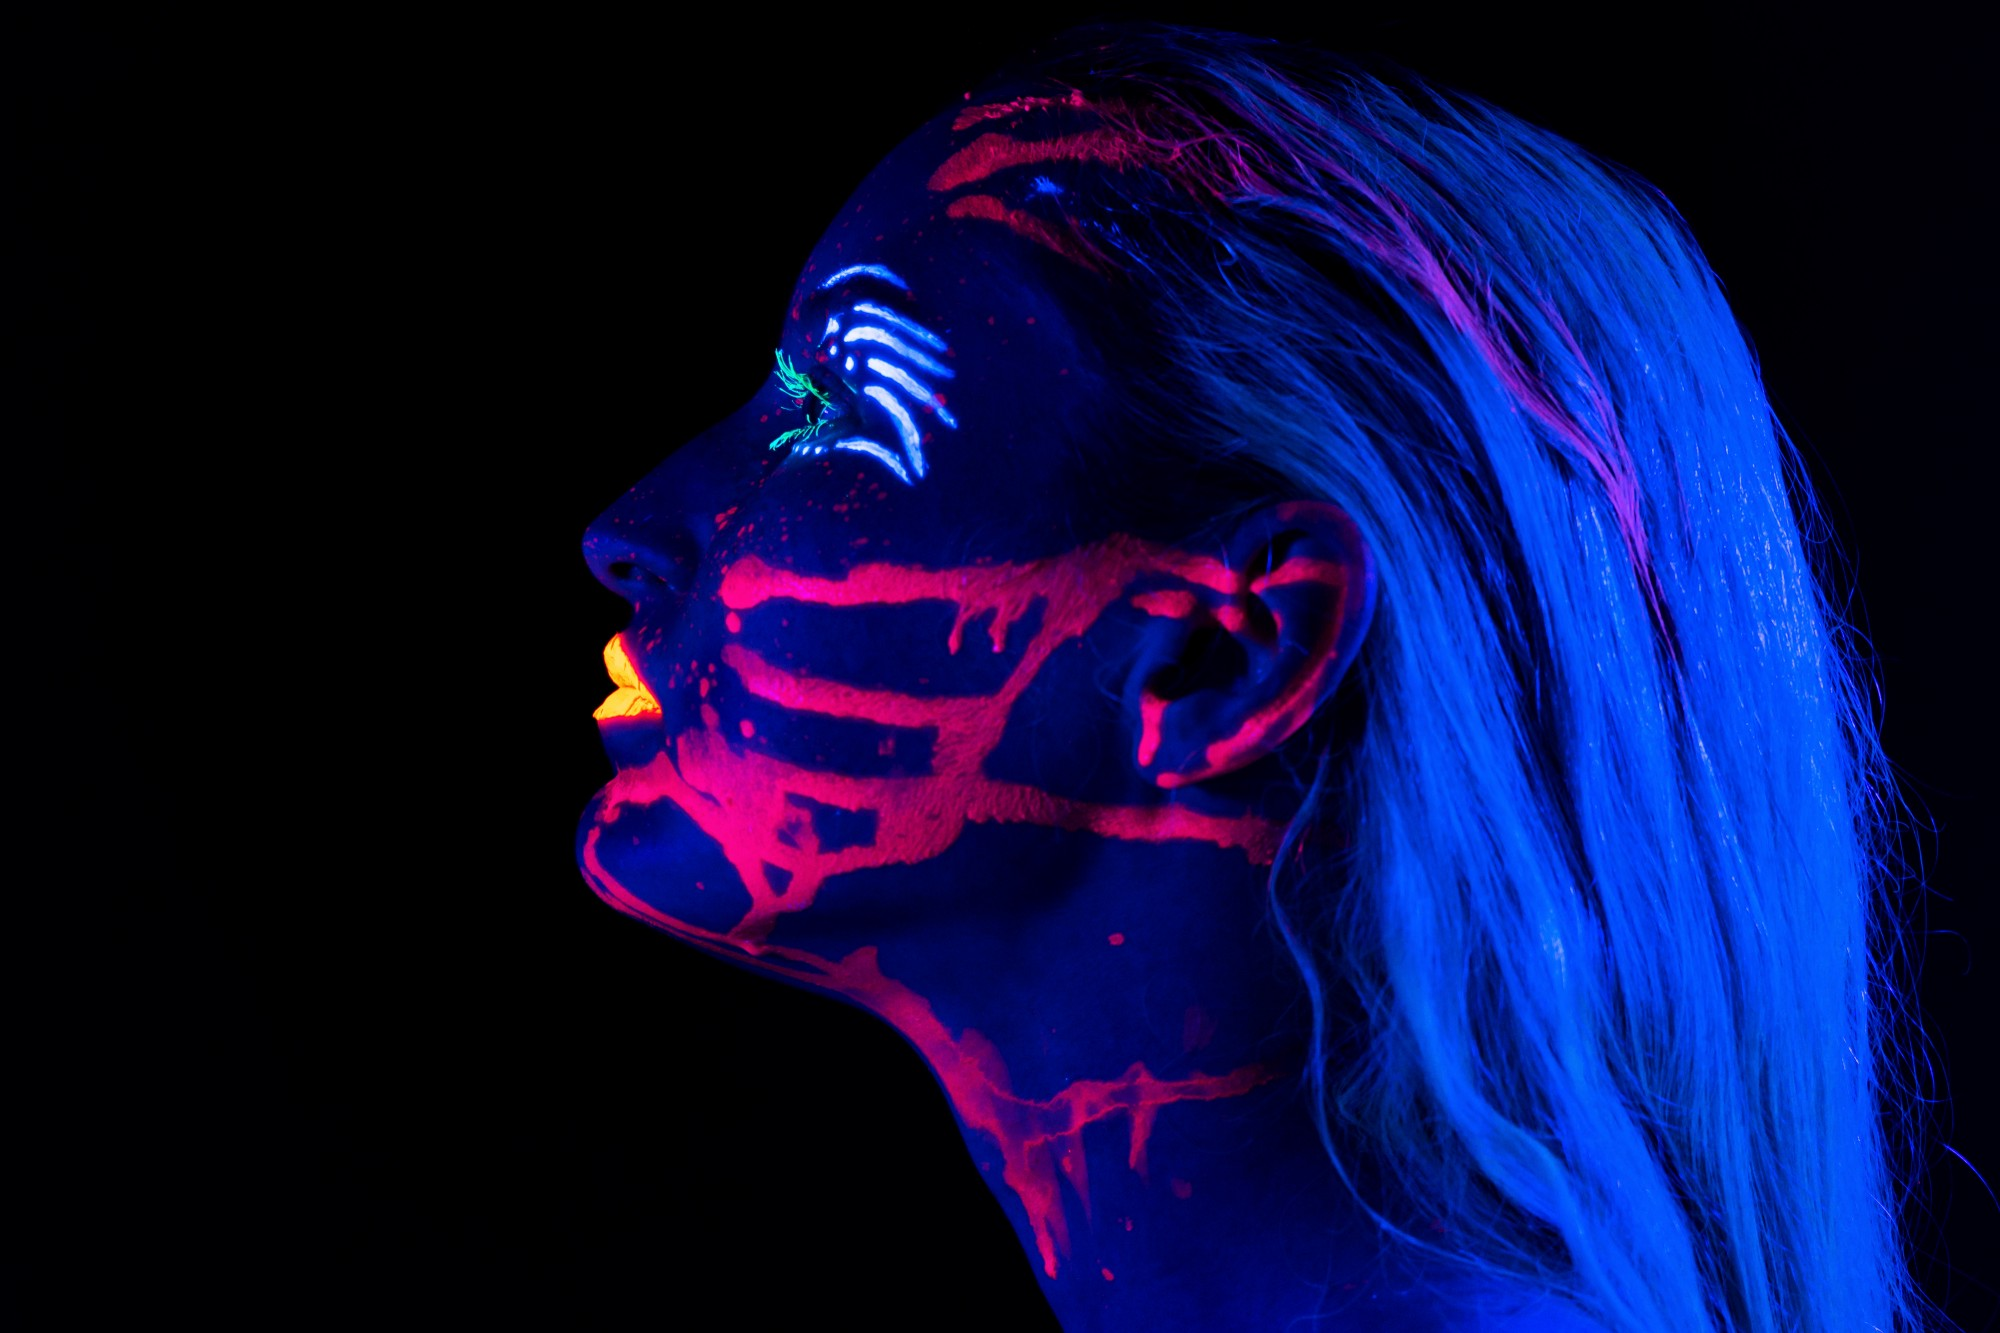 Neon bright woman, anxiety